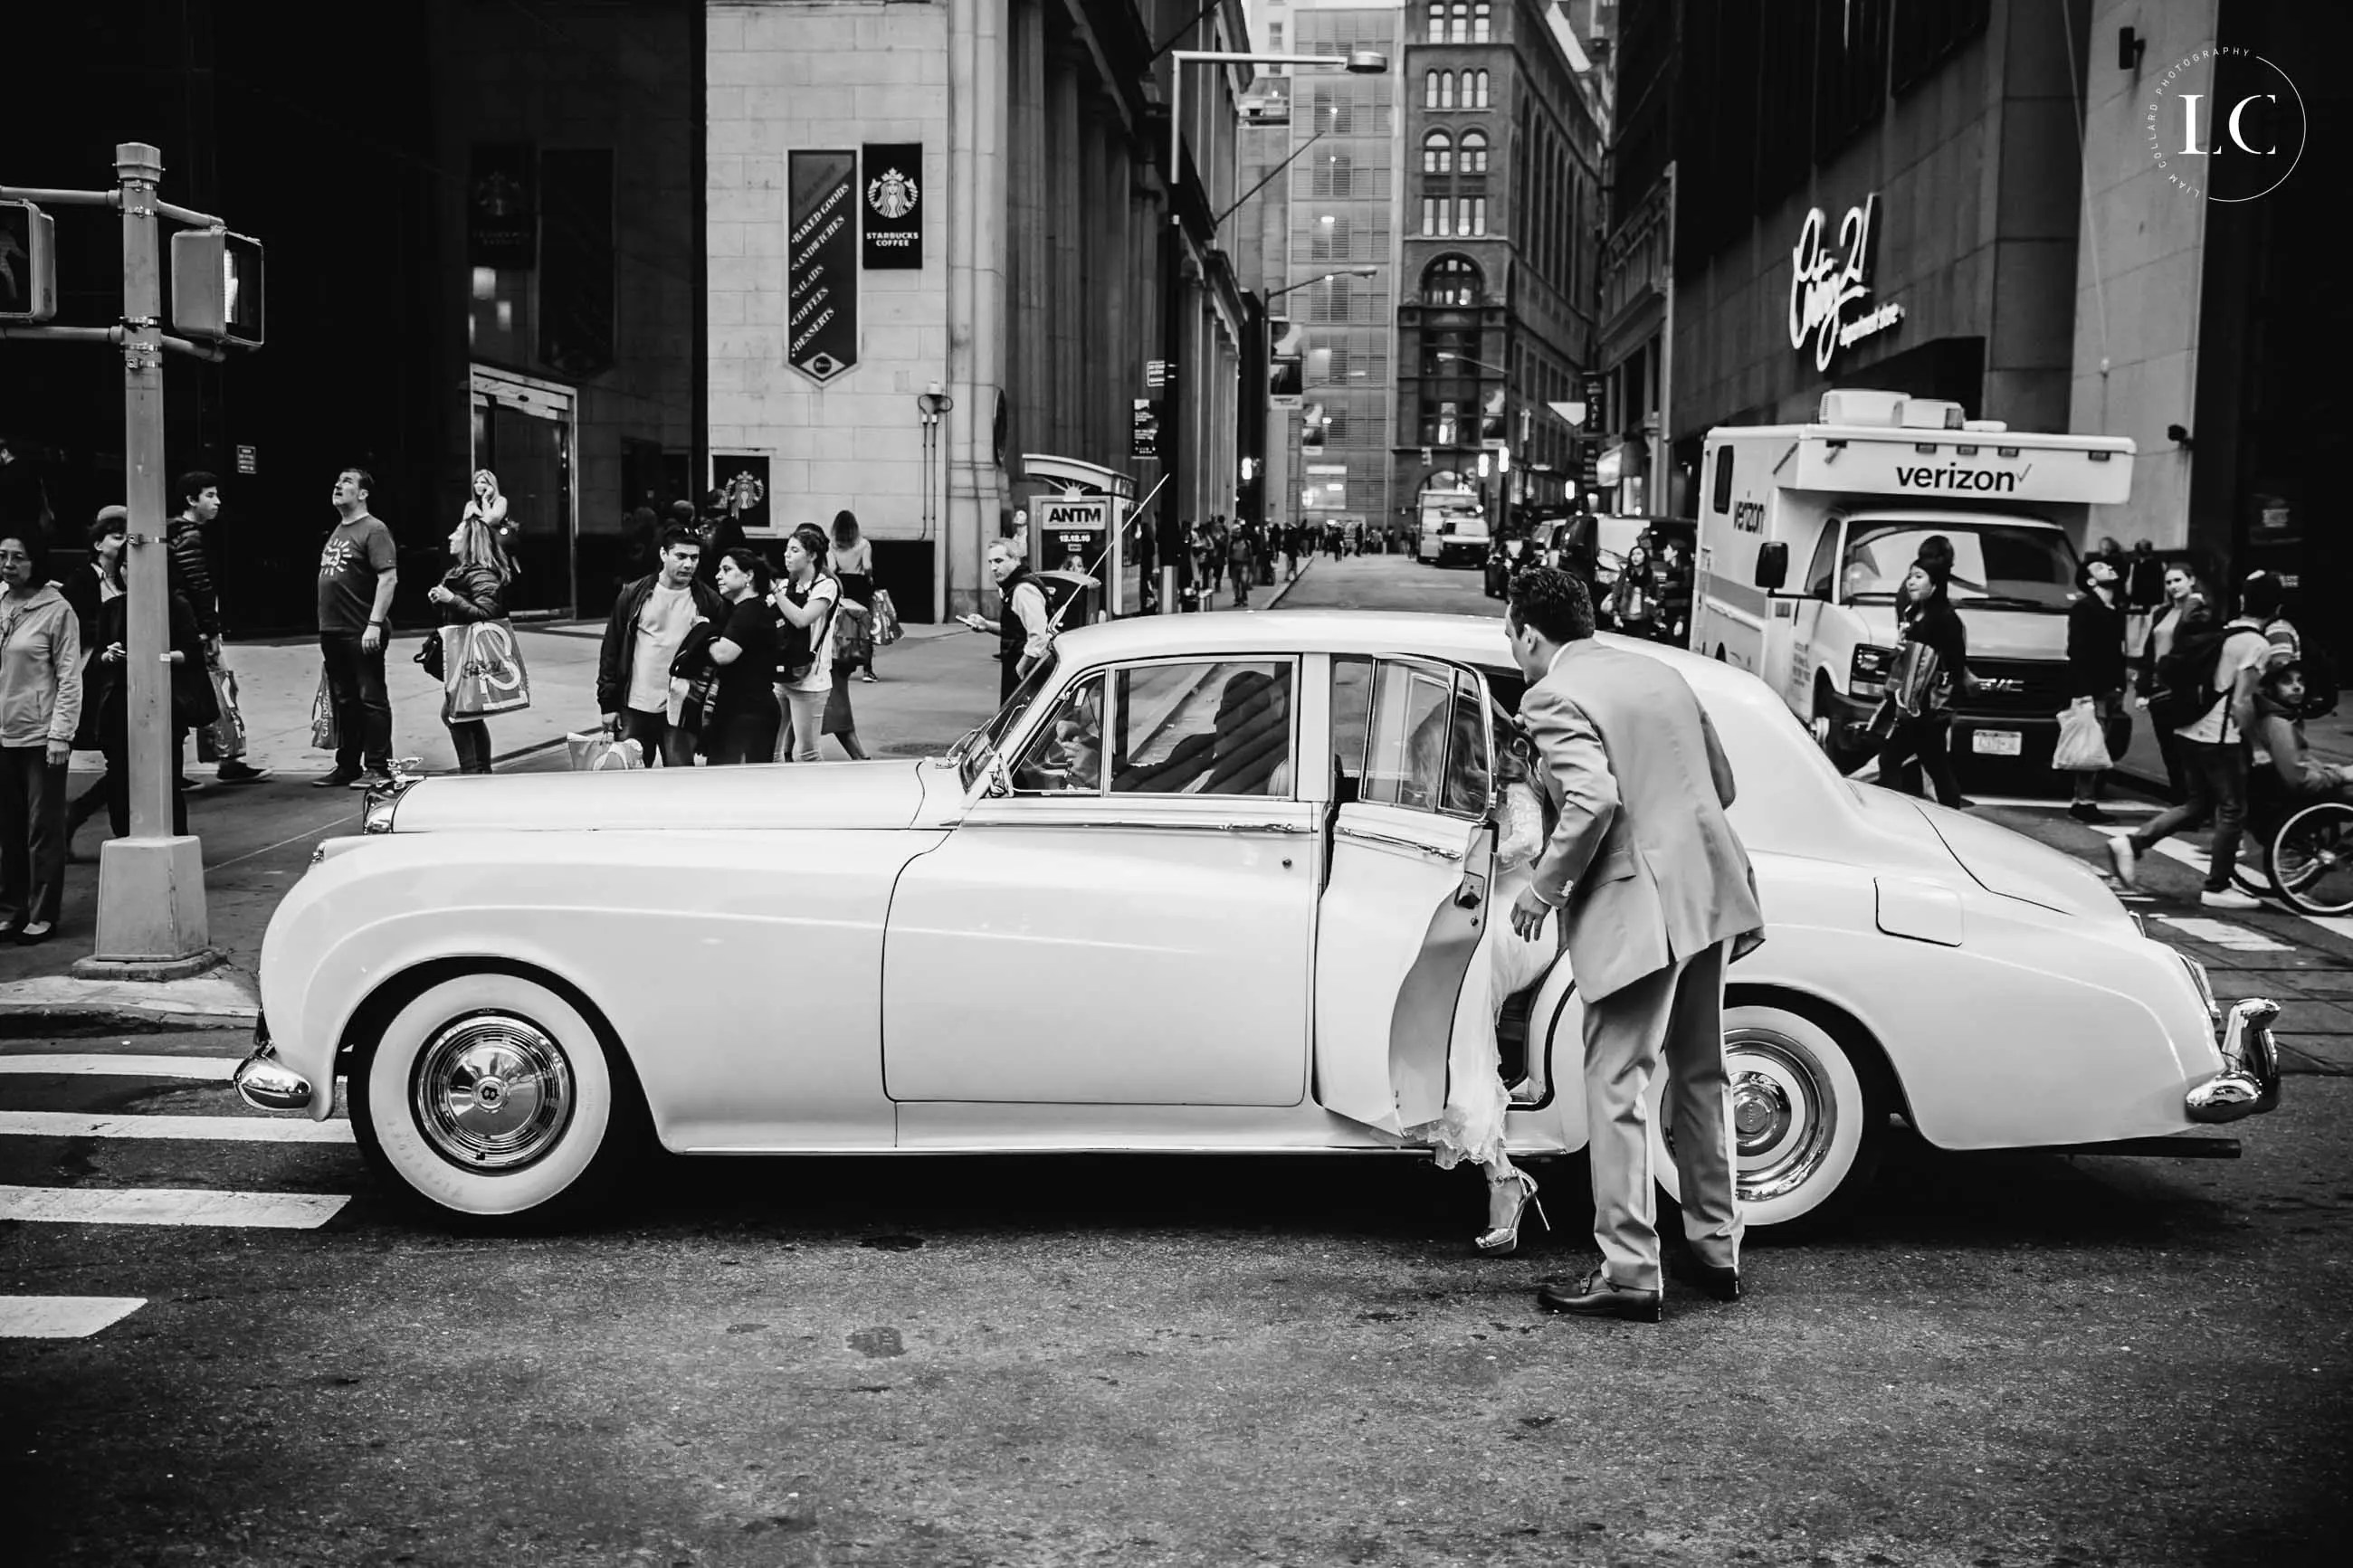 Black and white photo of vintage car